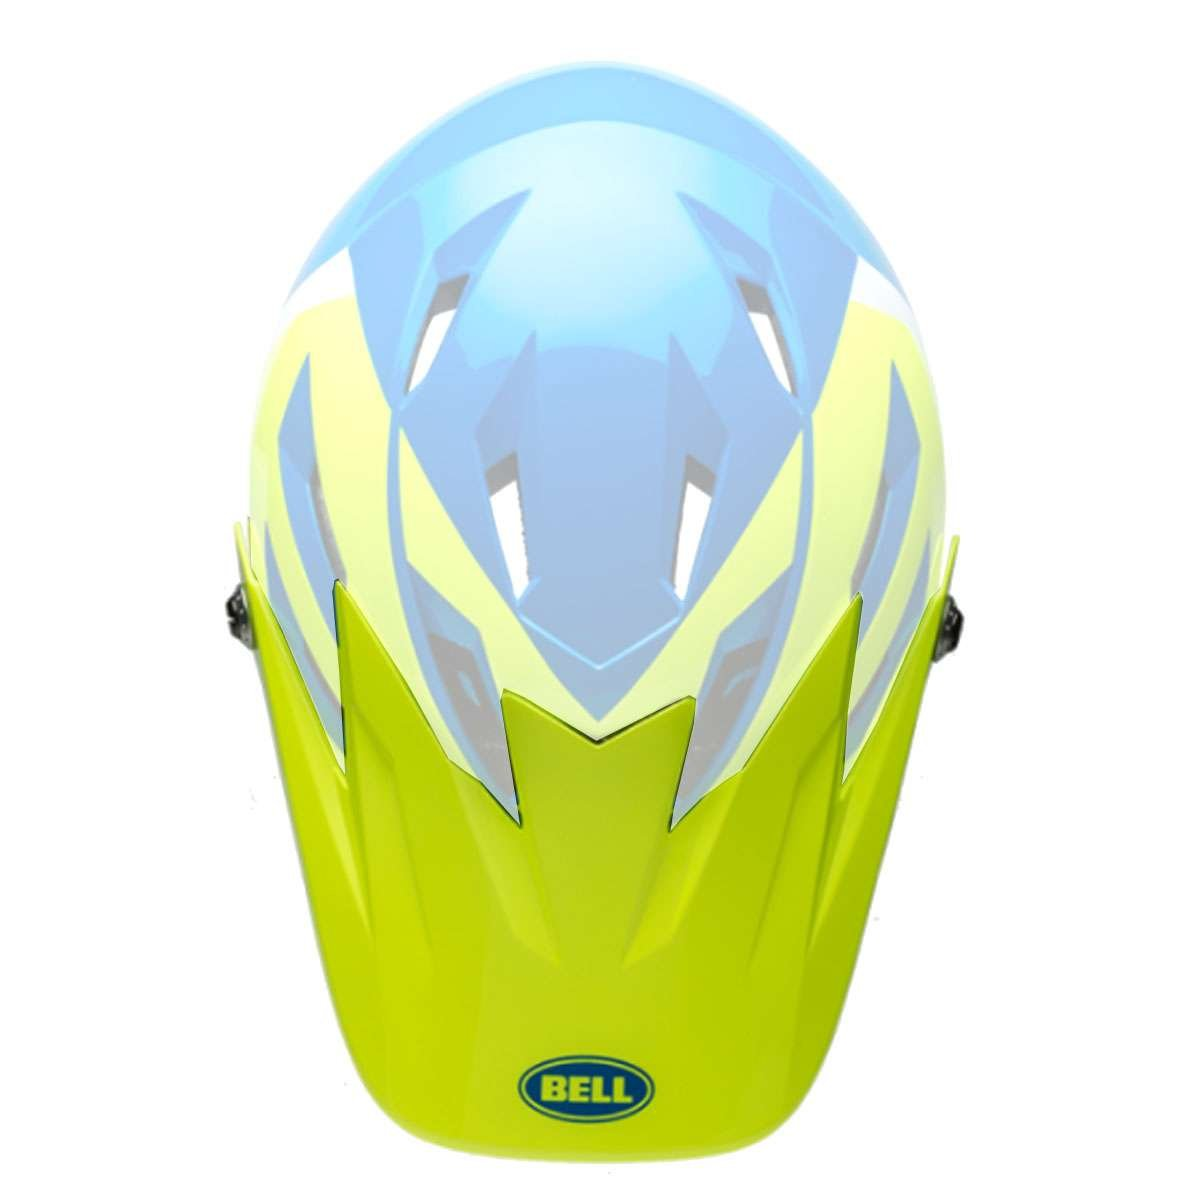 Bell Sports Sanction Helmet - Replacement Visor - Force Blue/Retina Sear - 7085299